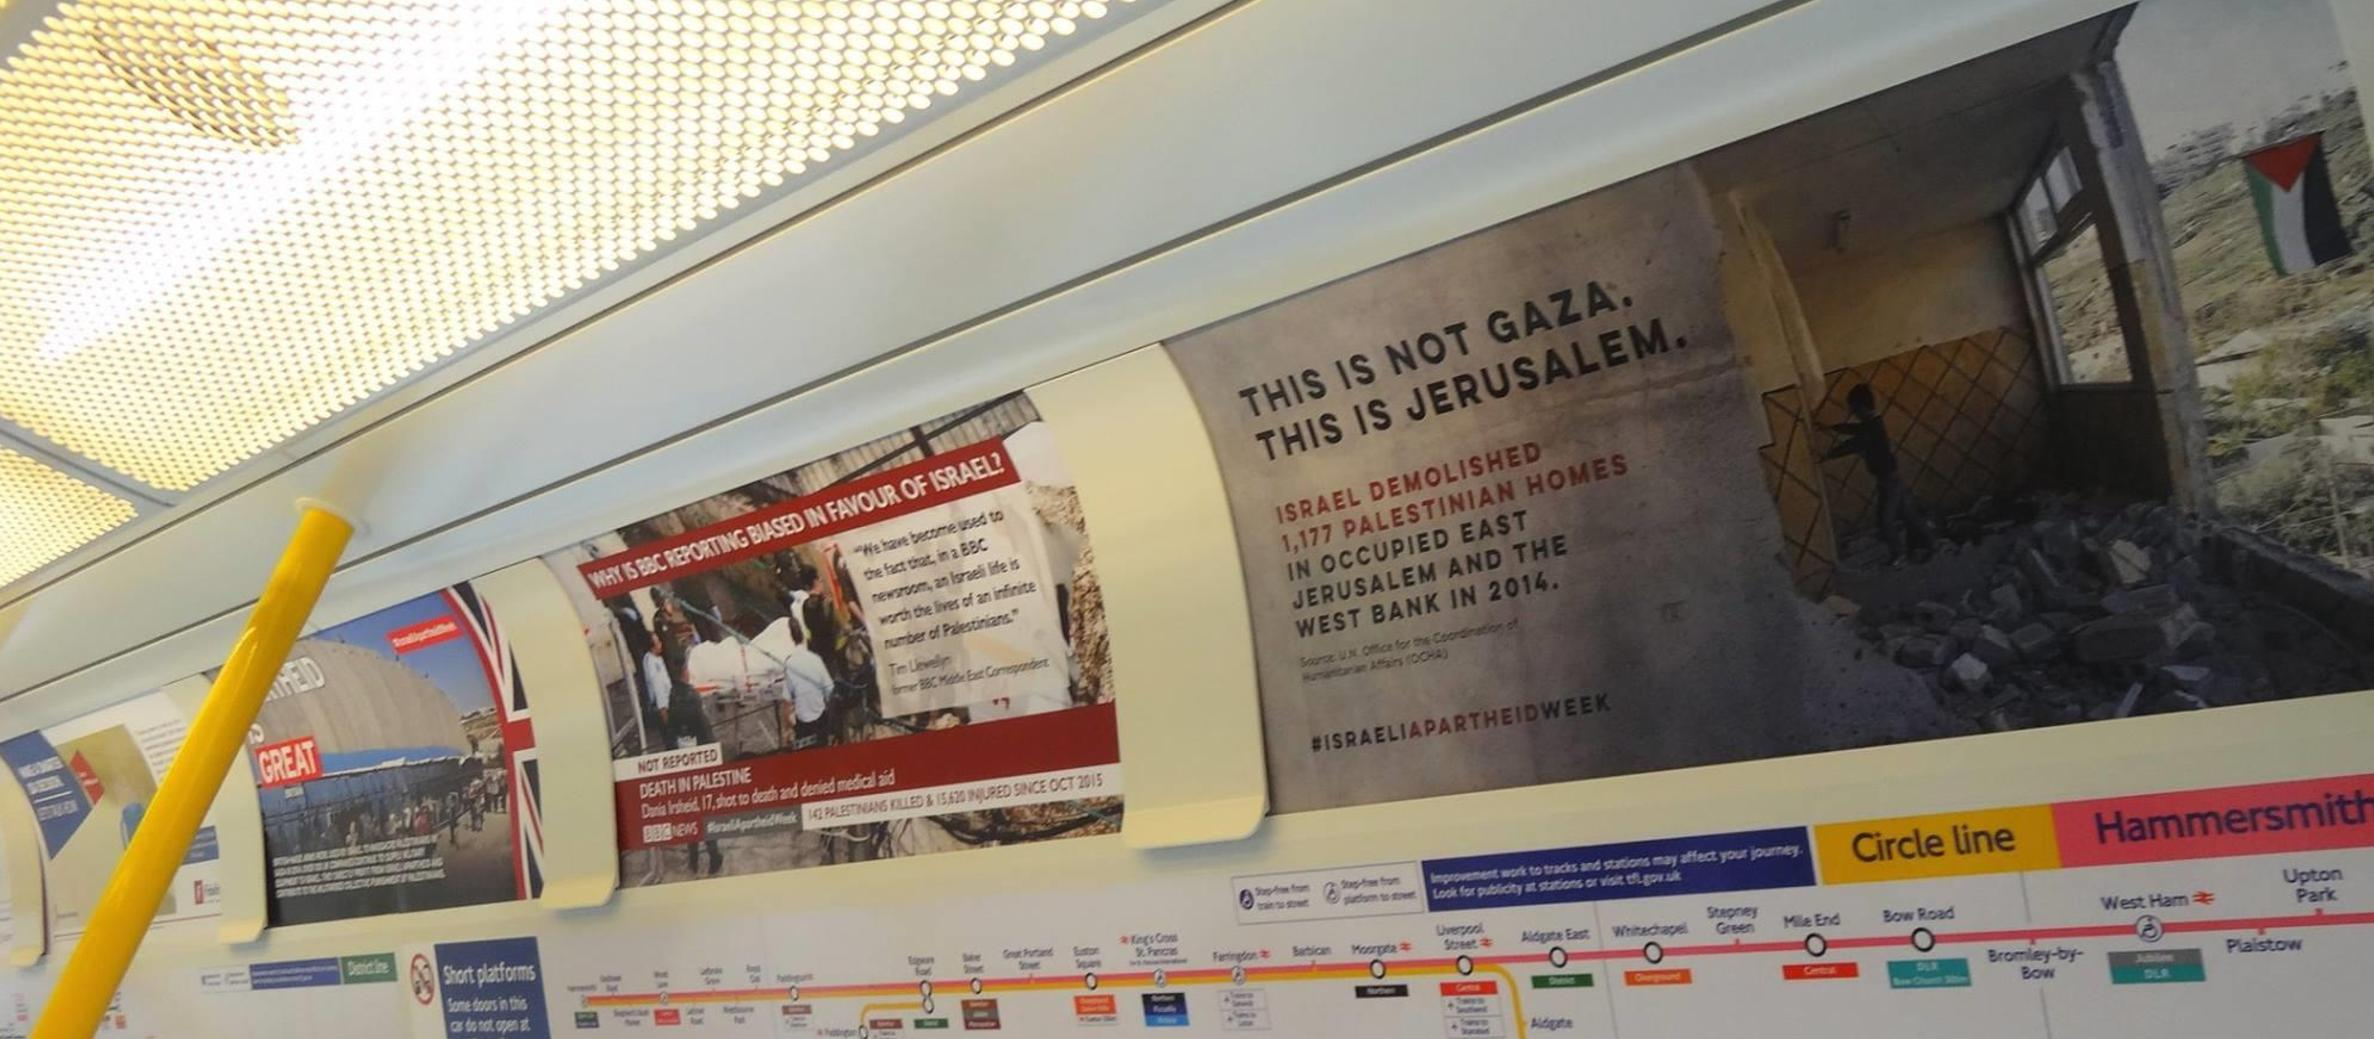 London Tube trains targeted by anti-Israel poster campaign